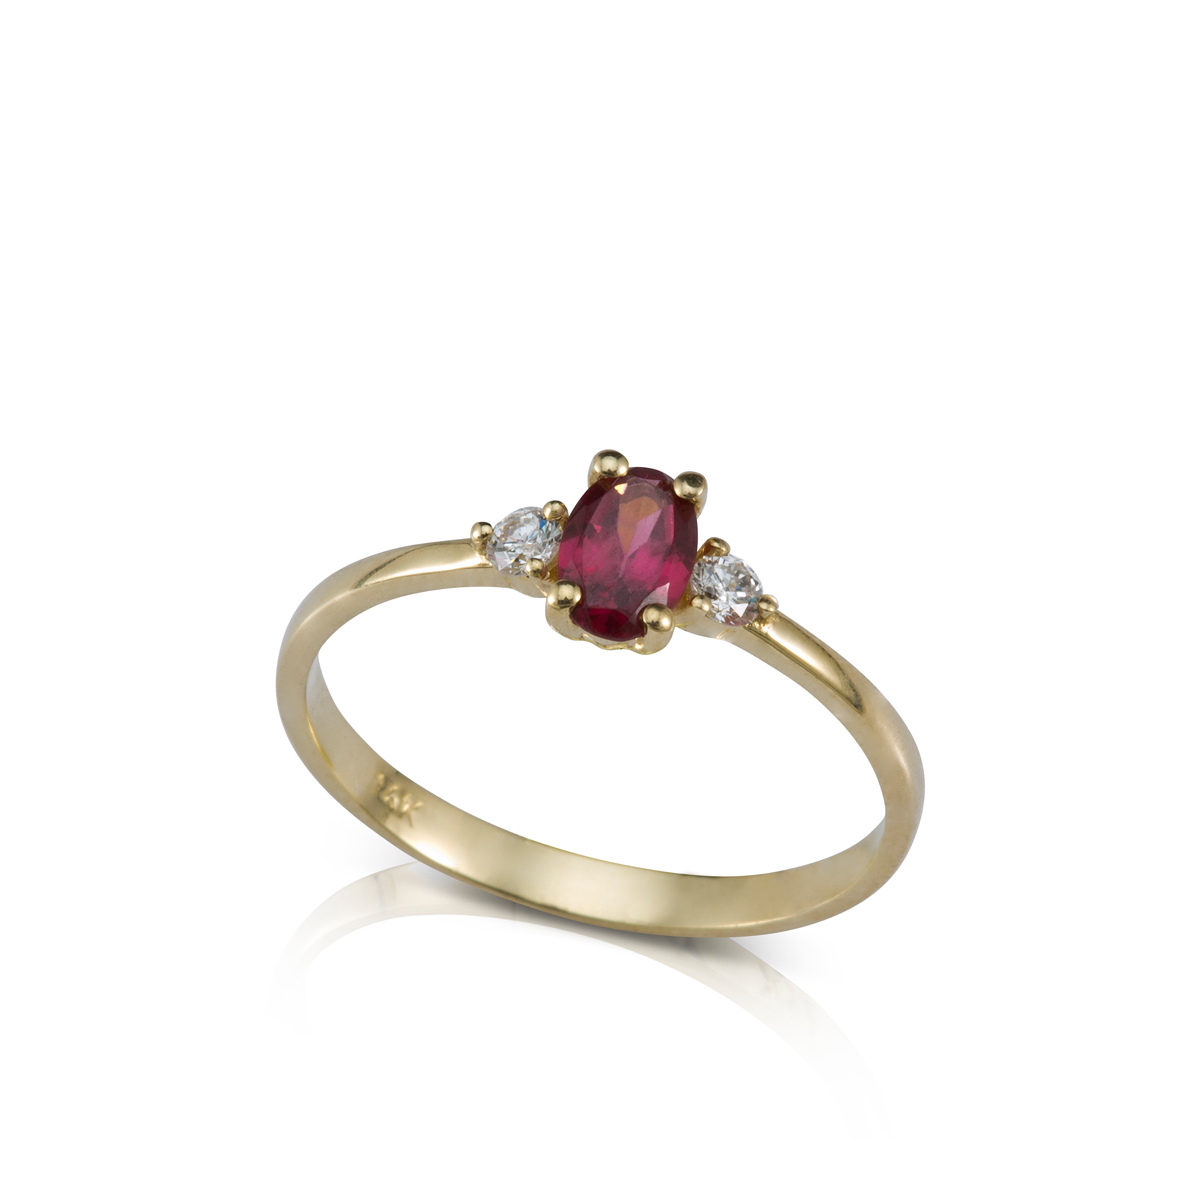 Oval shaped rhodolite engagment ring